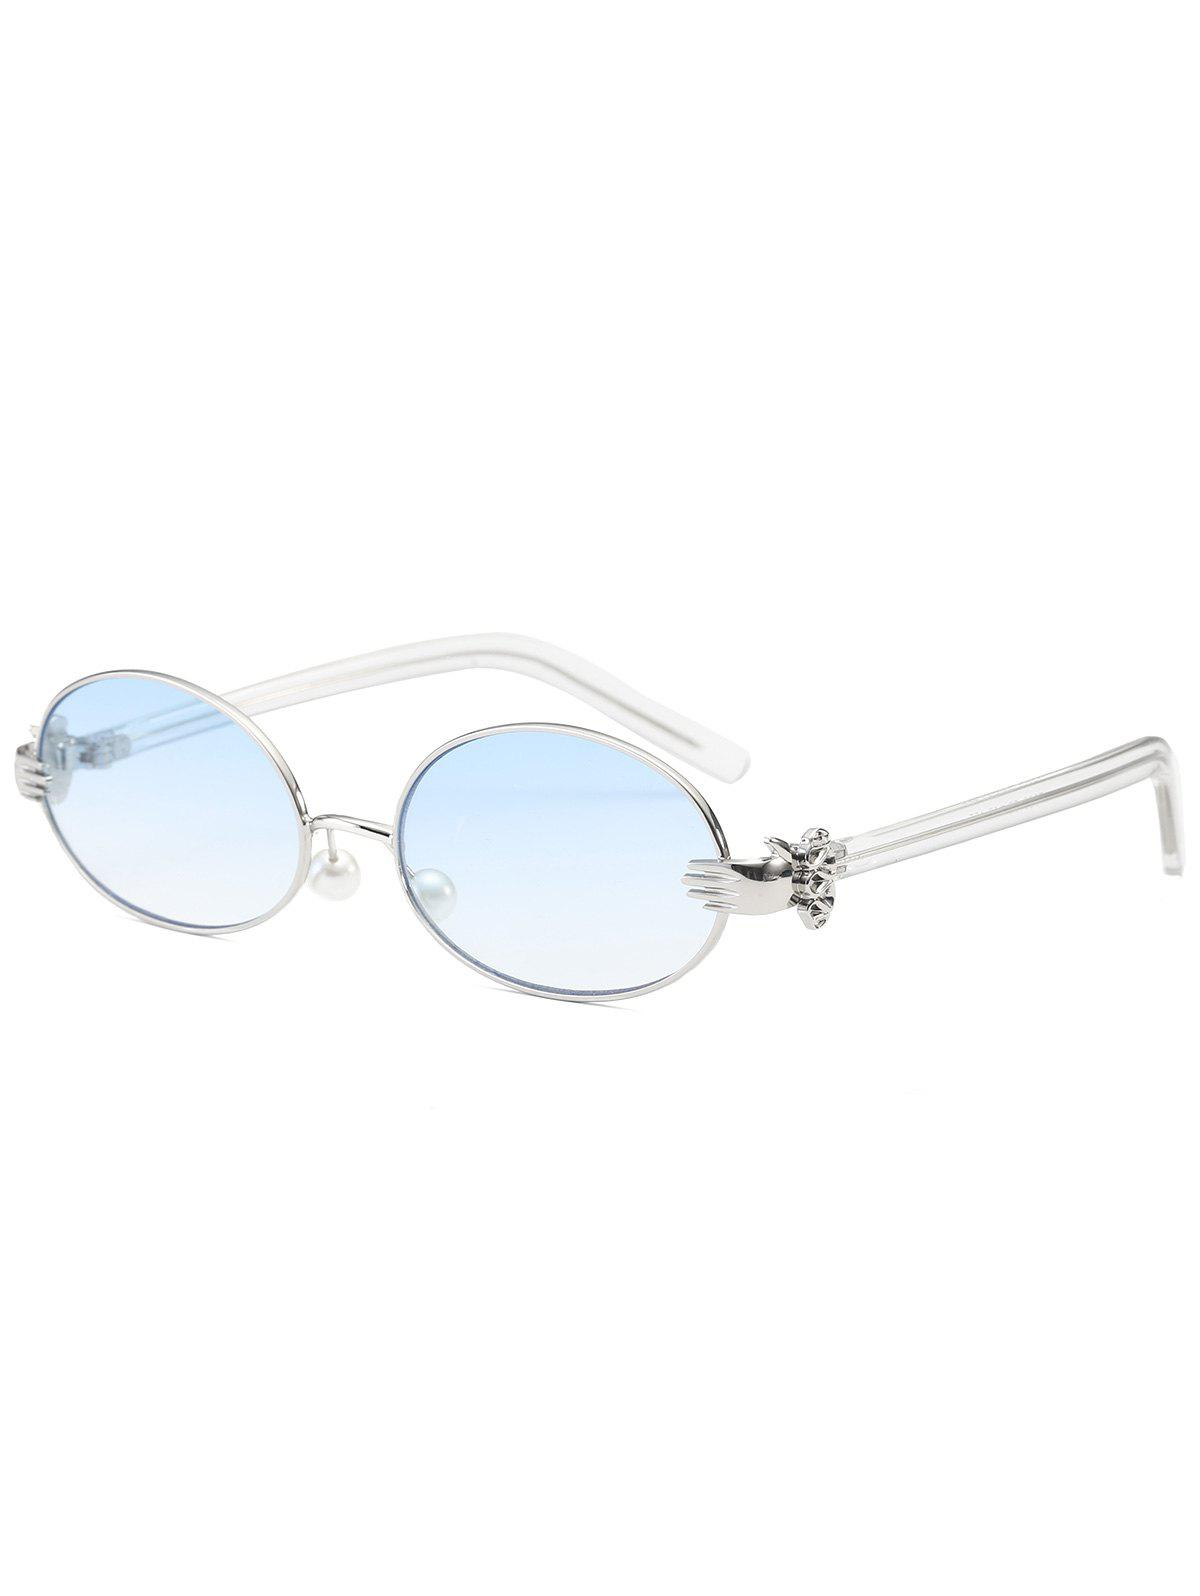 Oval Faux Pearl Nose Pad Metallic Hand SunglassesACCESSORIES<br><br>Color: LIGHT BLUE; Group: Adult; Gender: For Women; Style: Fashion; Shape: Oval; Lens material: Resin; Frame material: Other; Lens height: 3.8CM; Lens width: 5.6CM; Temple Length: 13.2CM; Nose: 1.7CM; Frame Length: 13.8CM; Weight: 0.1000kg; Package Contents: 1 x Sunglasses;